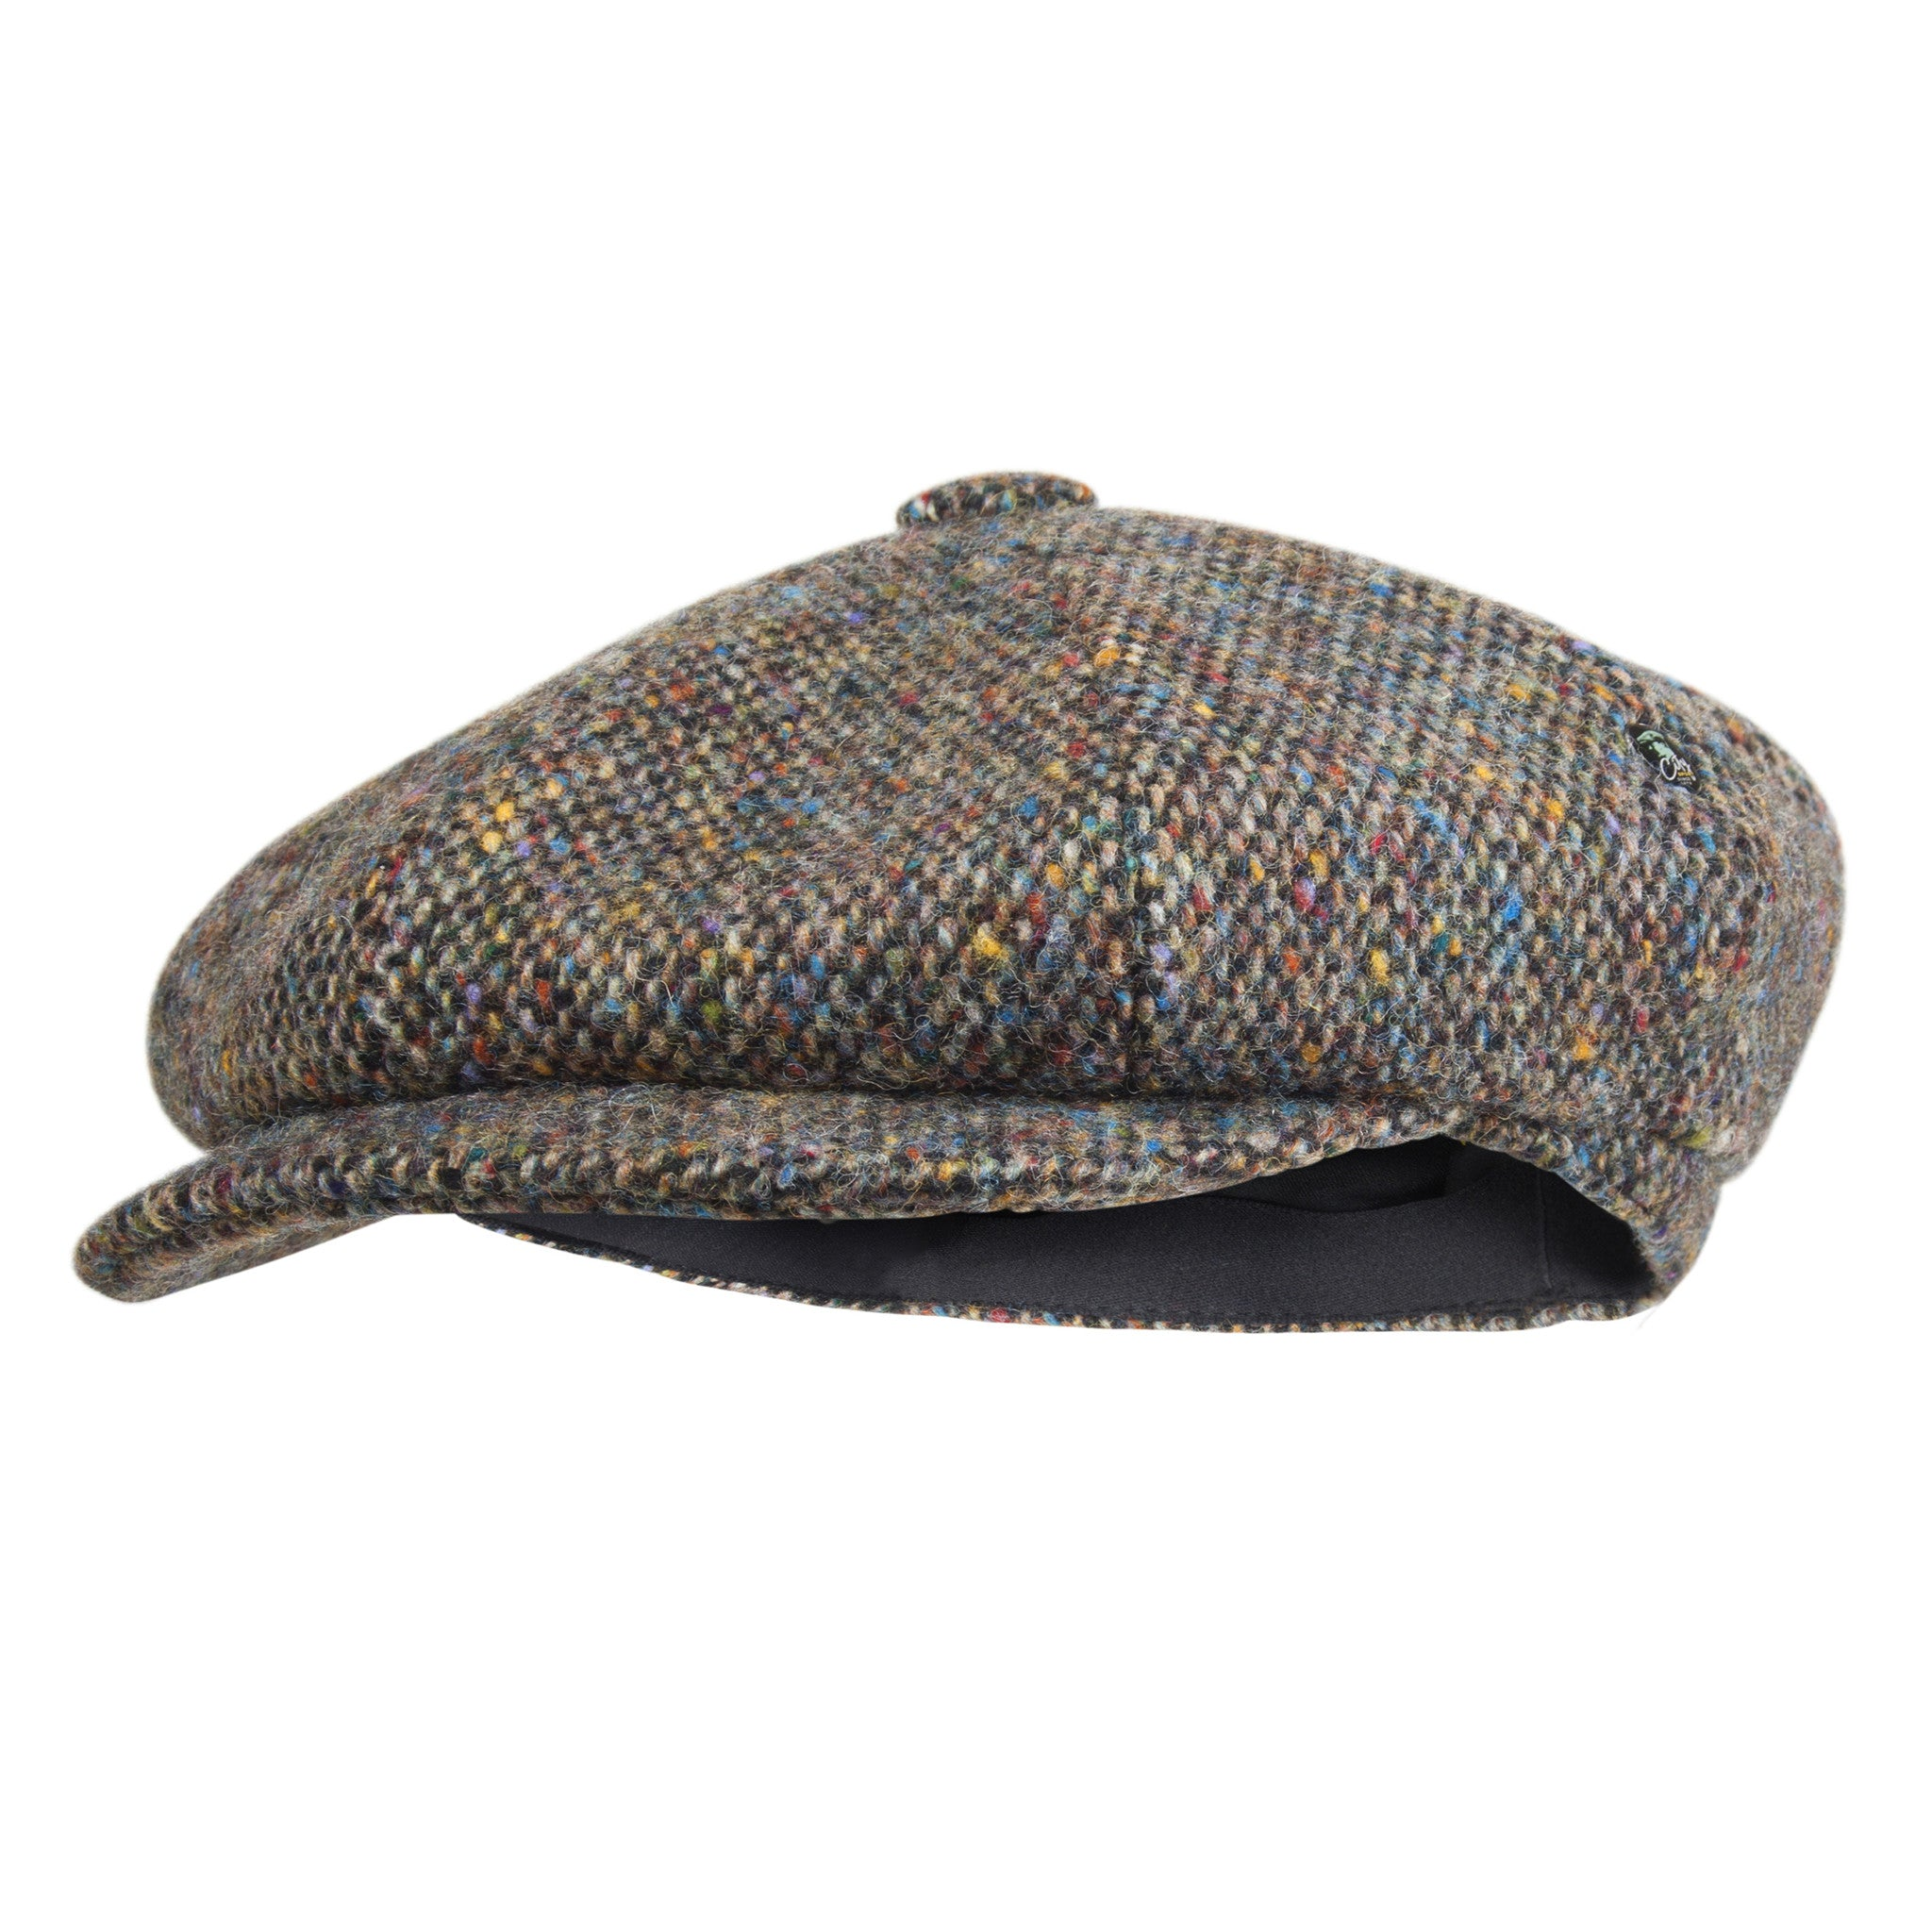 Donegal Tweed bakerboy cap | Multi Coloured | buy now at The Cashmere Choice London